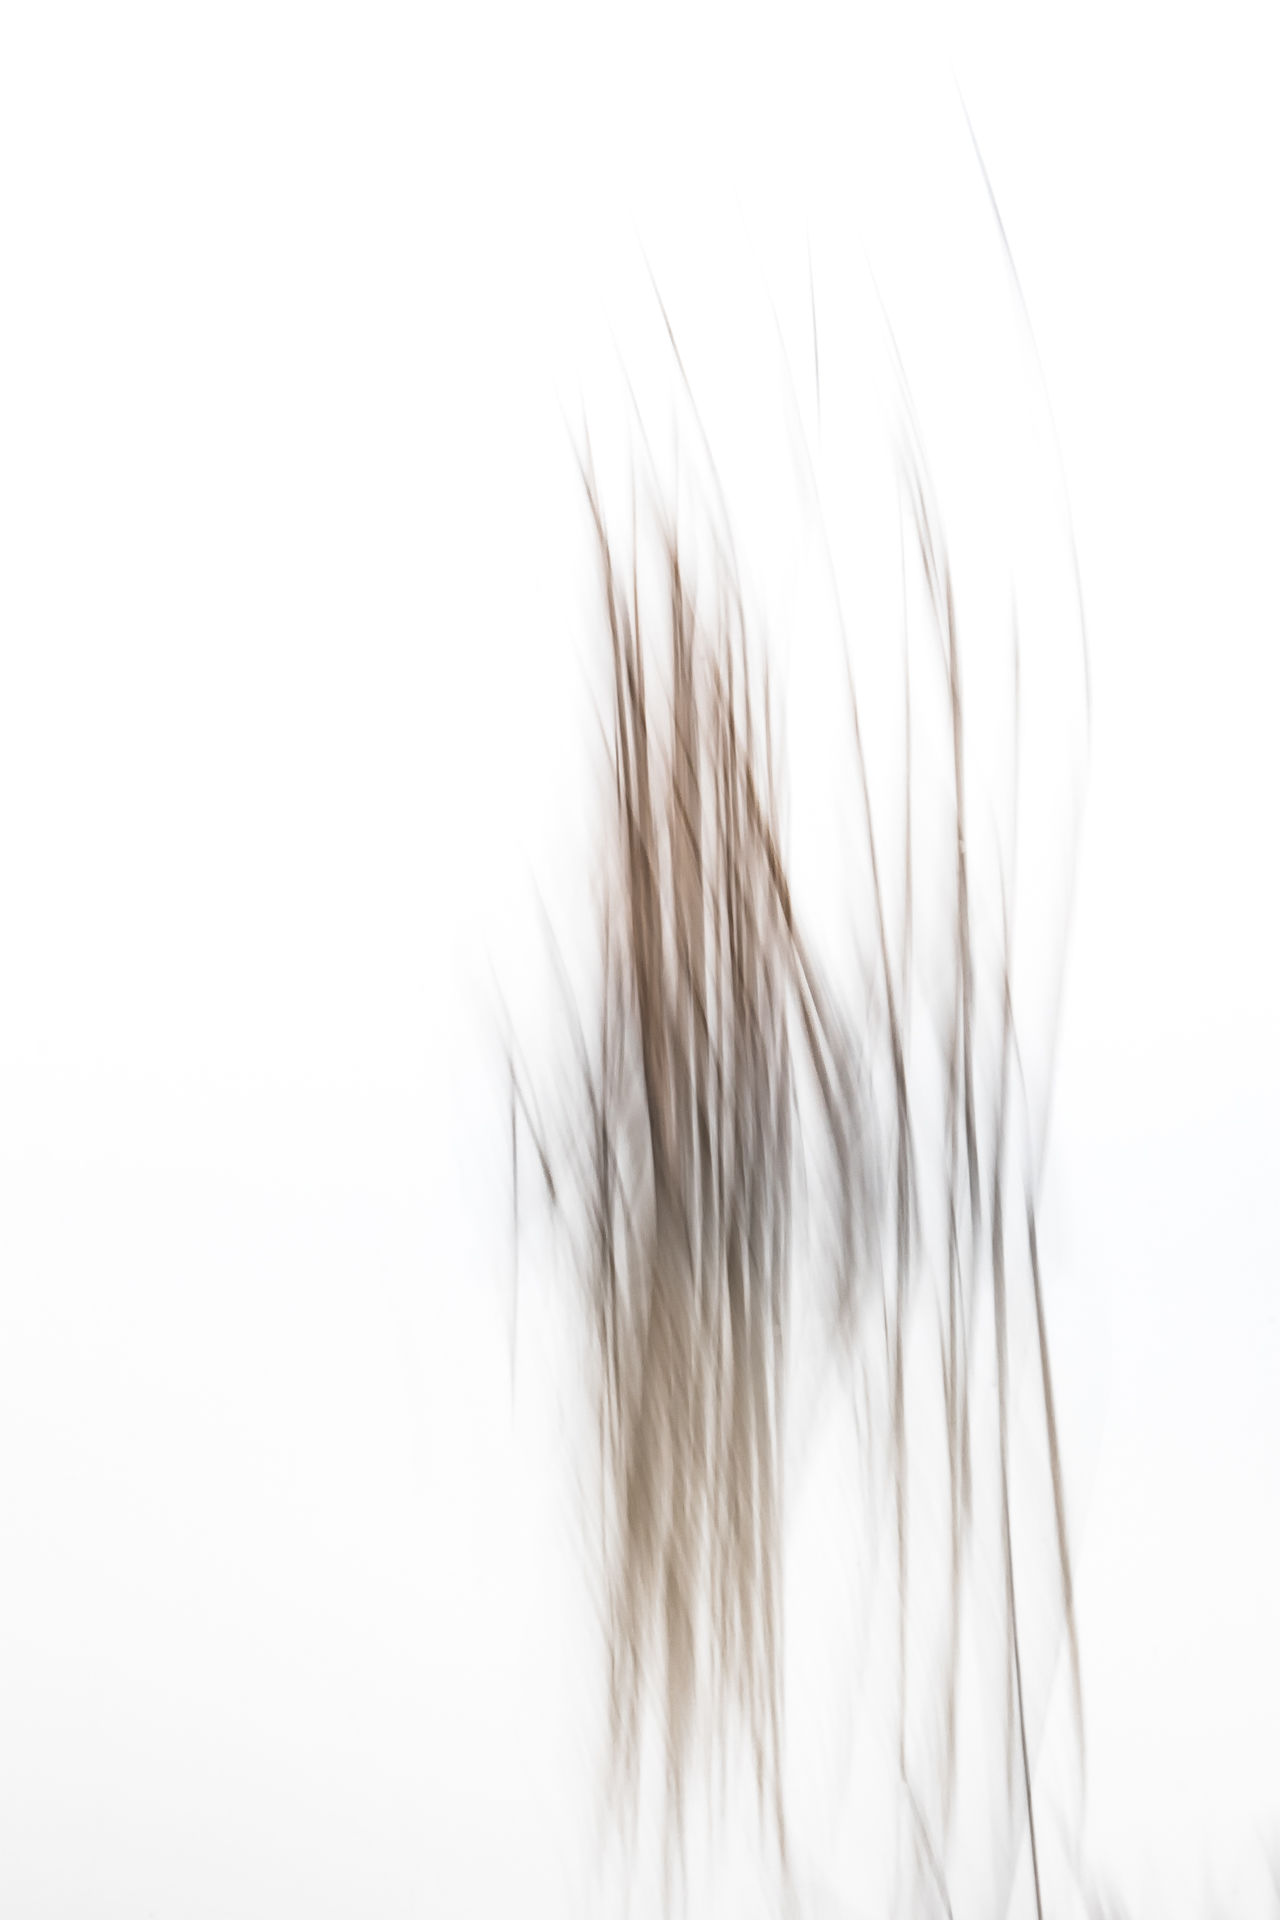 Abstract Abstract Photography Beauty Blurred Movement Close-up Experimental Experimental Photography Grey Color Lake Blurred Mirroring In Water Motion Reed White Background